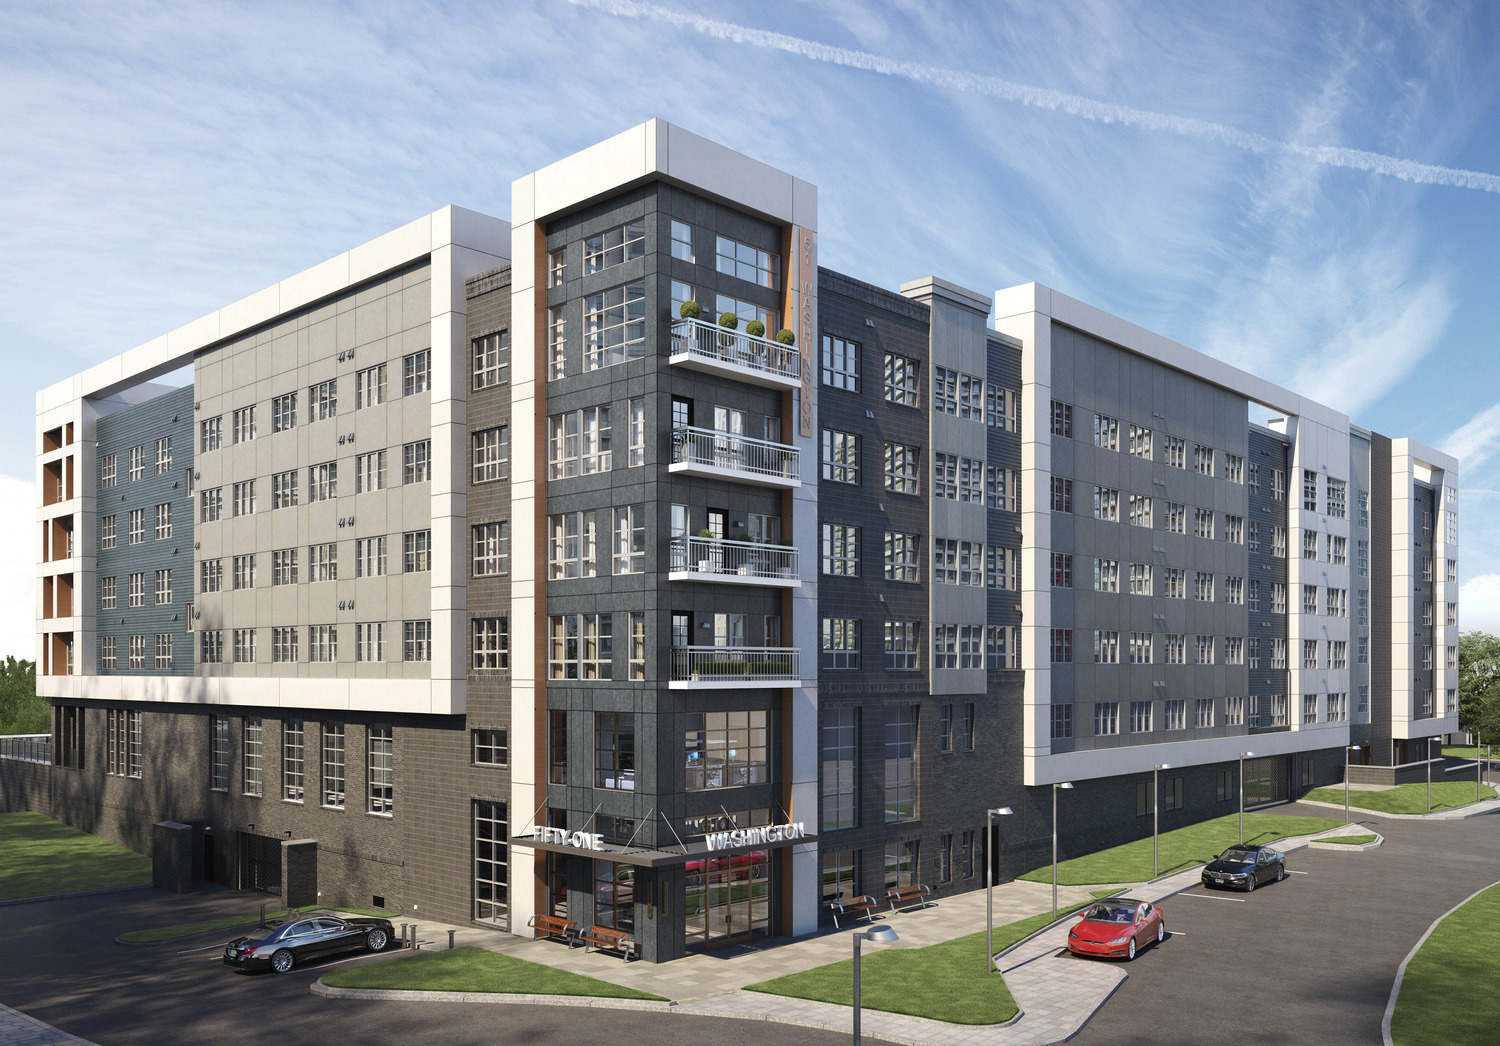 CBG builds 51 Washington, a 304-Unit, Five-Story Luxury Community with Pool and Cast-In-Place Garage in Conshohocken, PA